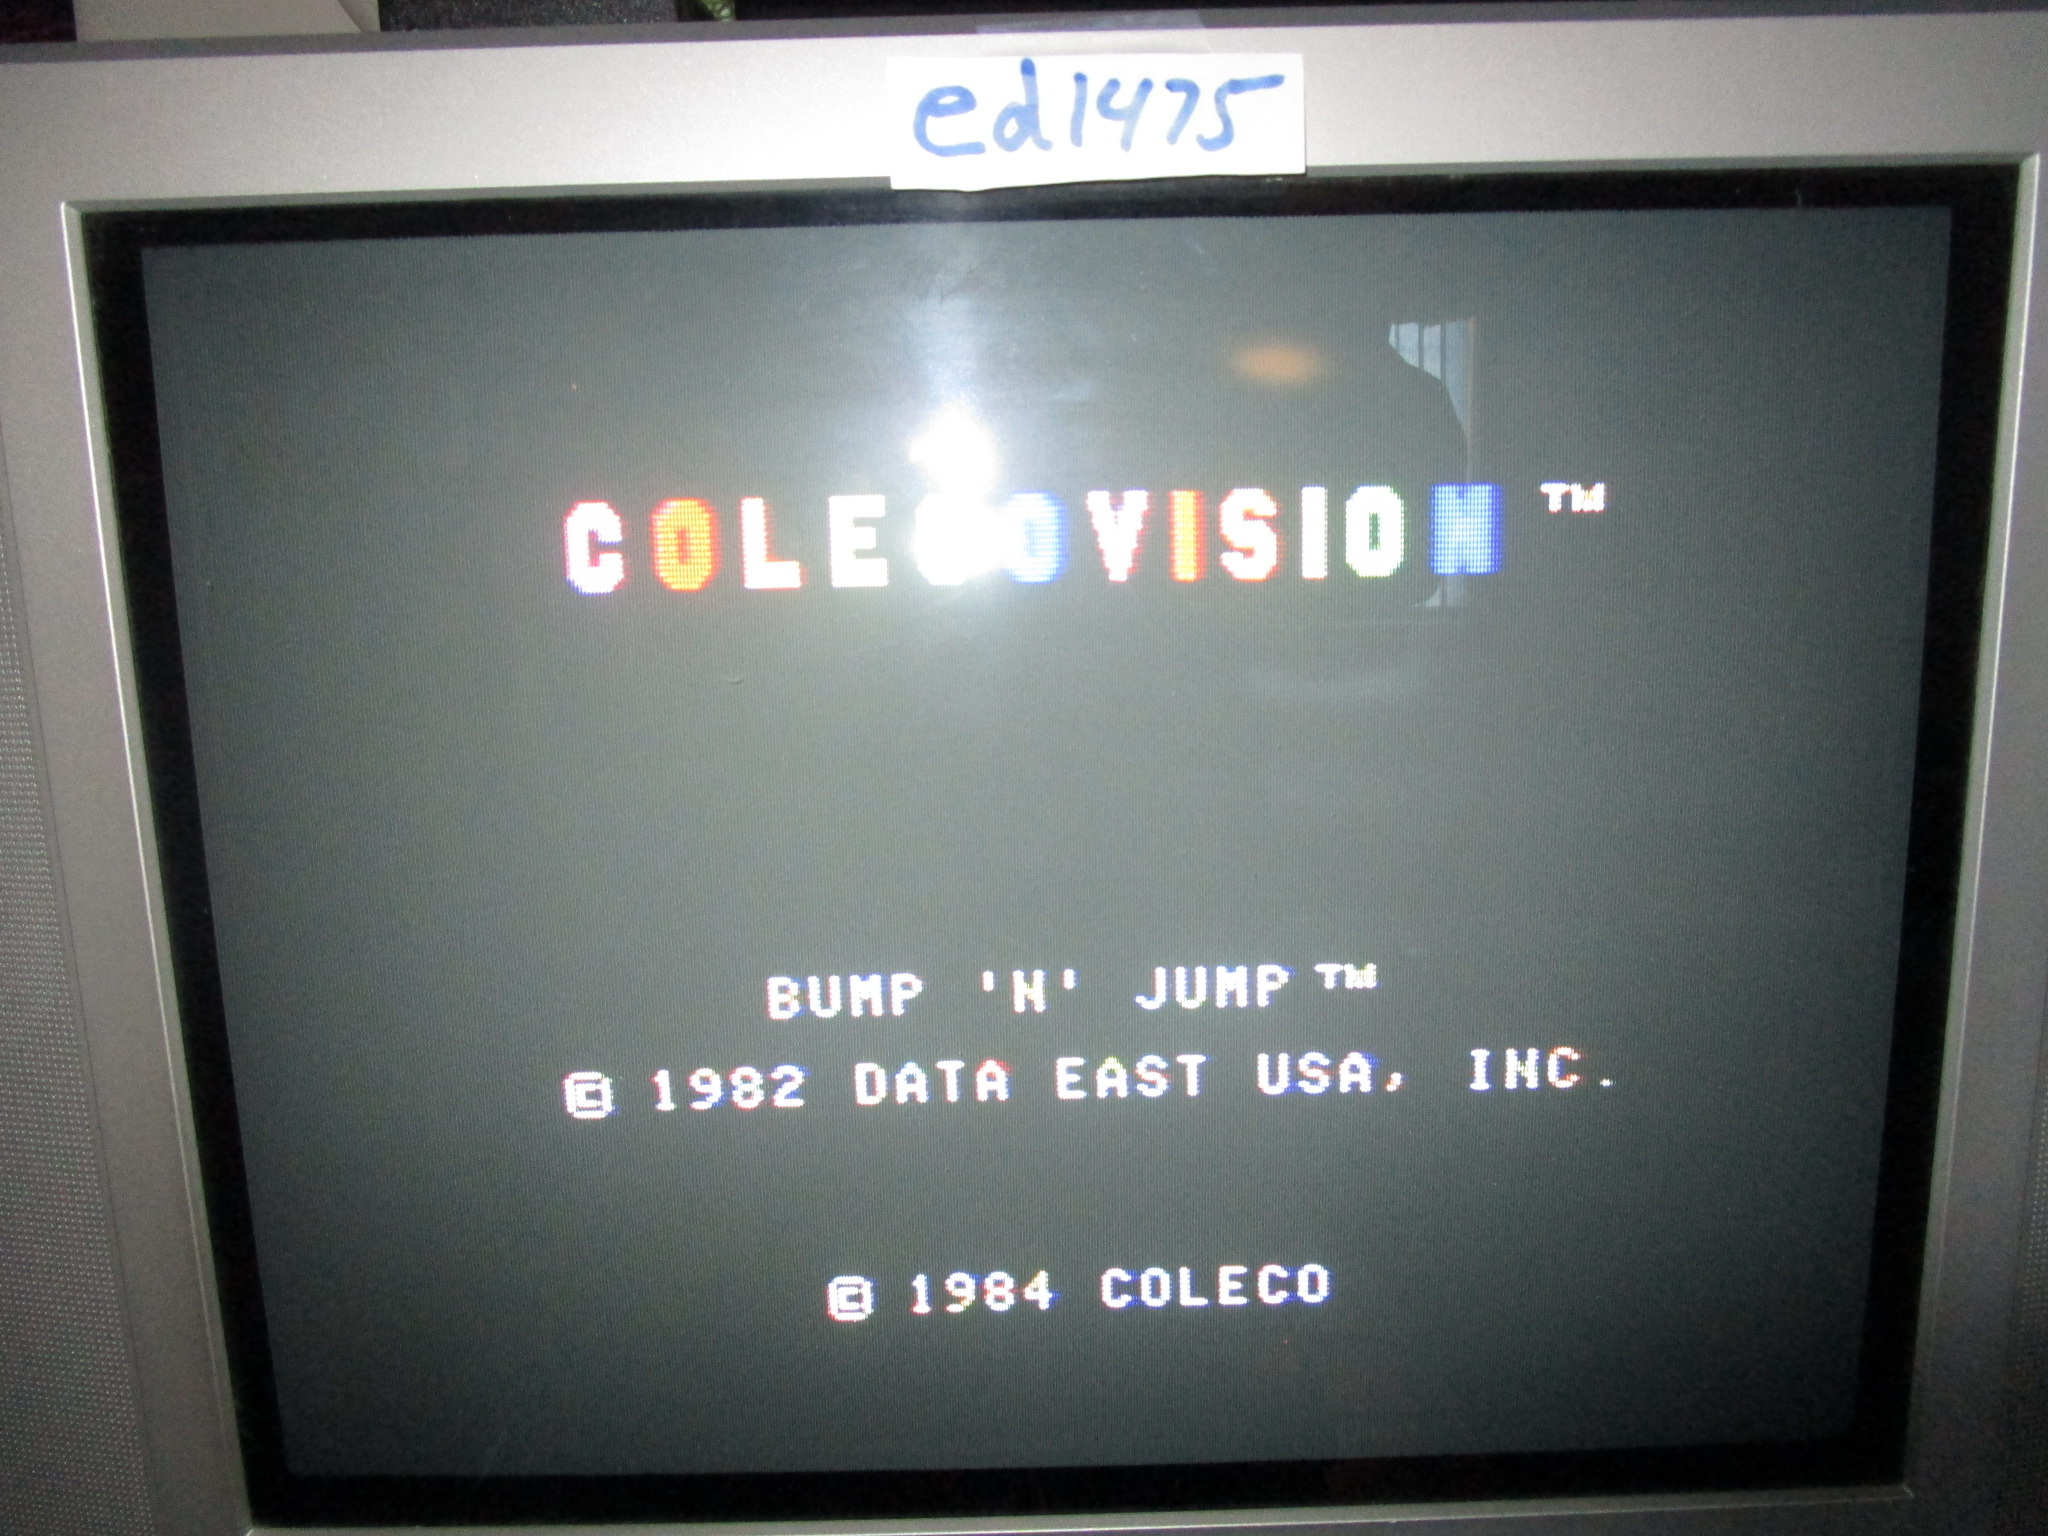 ed1475: Bump `n` Jump (Colecovision Flashback) 102,624 points on 2015-02-07 18:41:52